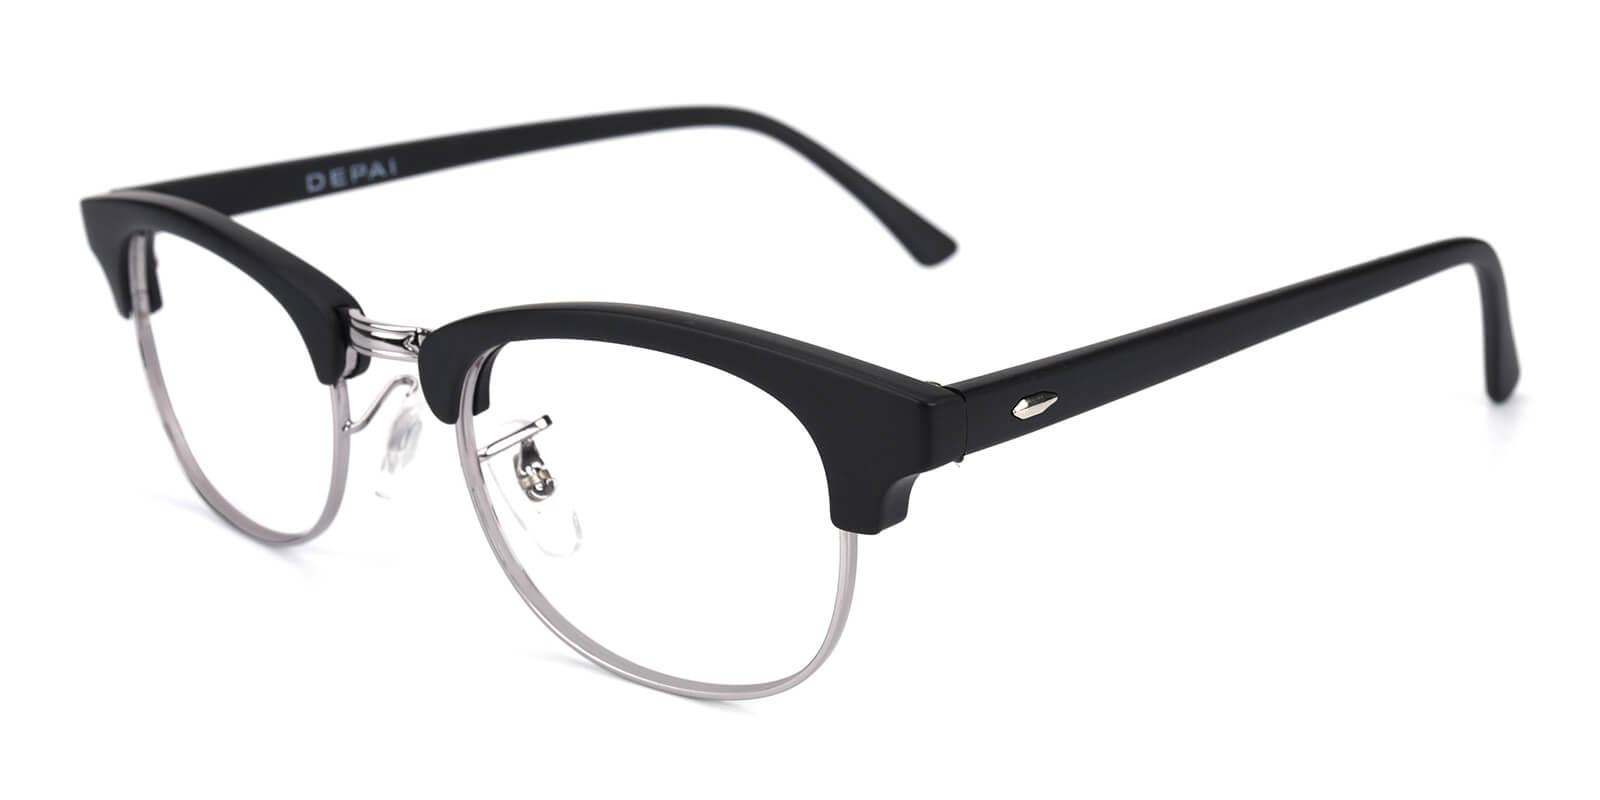 Sercily-Black-Square-TR-Eyeglasses-additional1